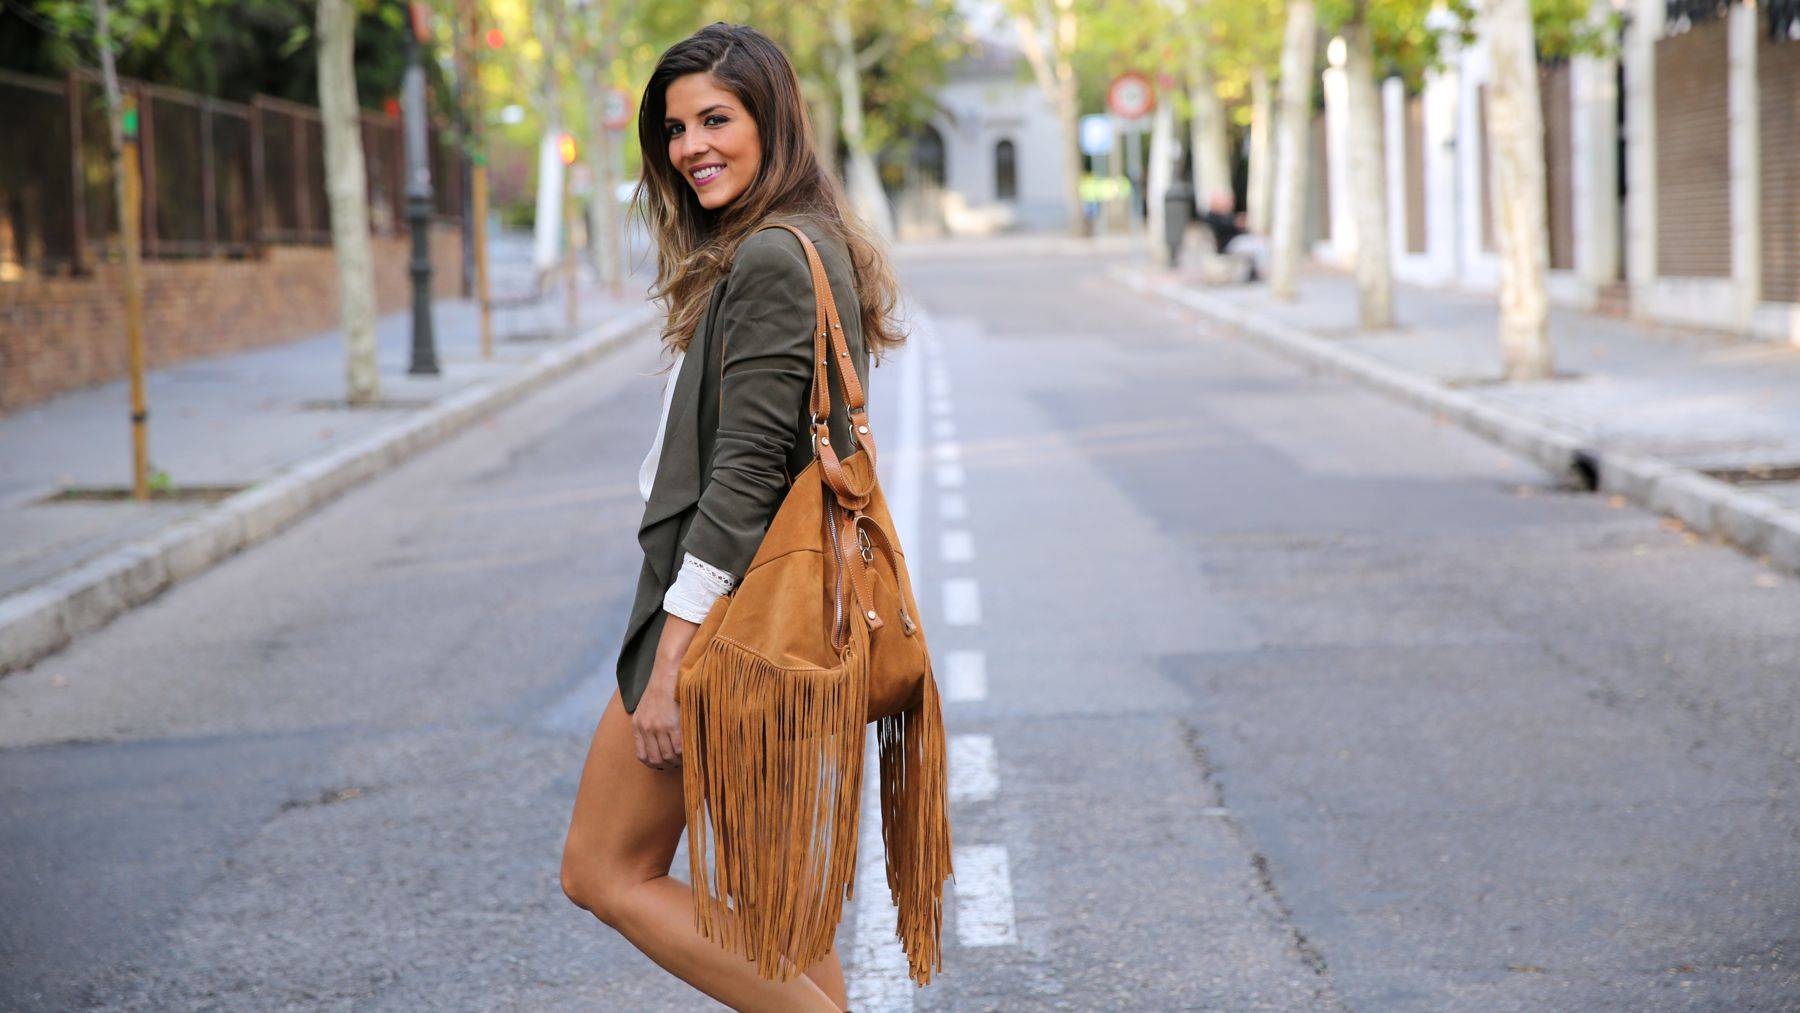 trendy_taste-look-outfit-street_style-ootd-blog-blogger-fashion_spain-moda_españa-boho-hippie-flecos-botines_camperos-cowboy_booties-mochila-backpack-blusa-camisa-denim-shorts-vaqueros-10